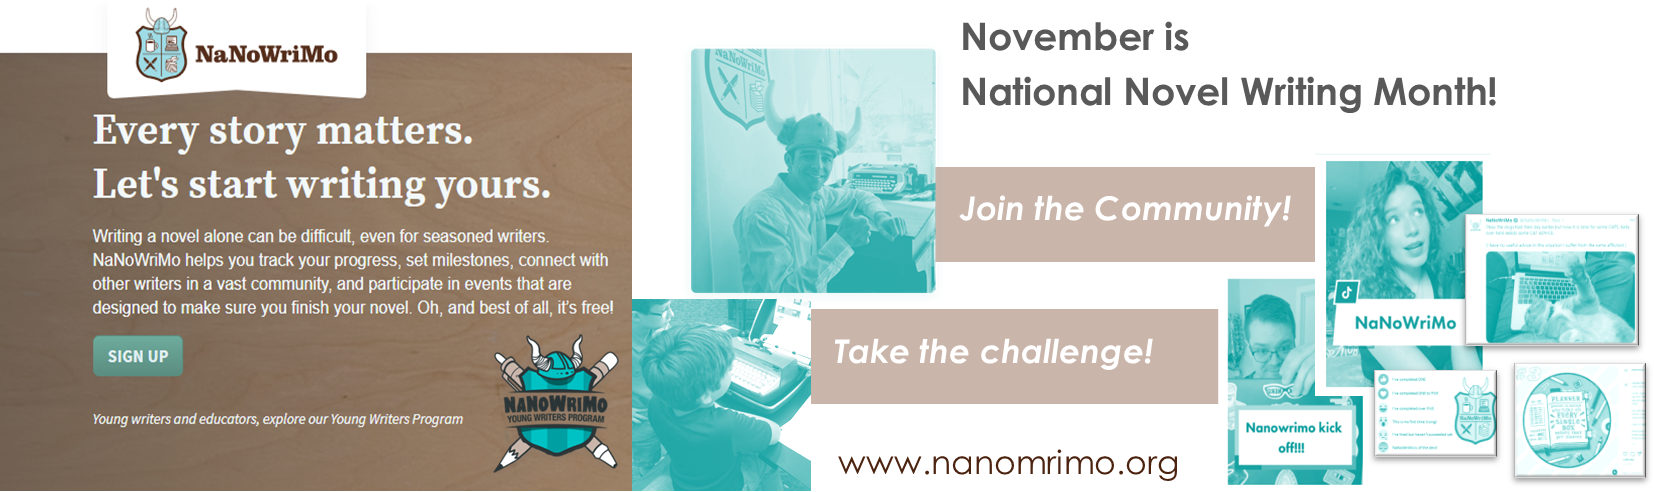 November is National Novel Writing Month! Sign up today! Go to www.nanowrimo.org for more information.